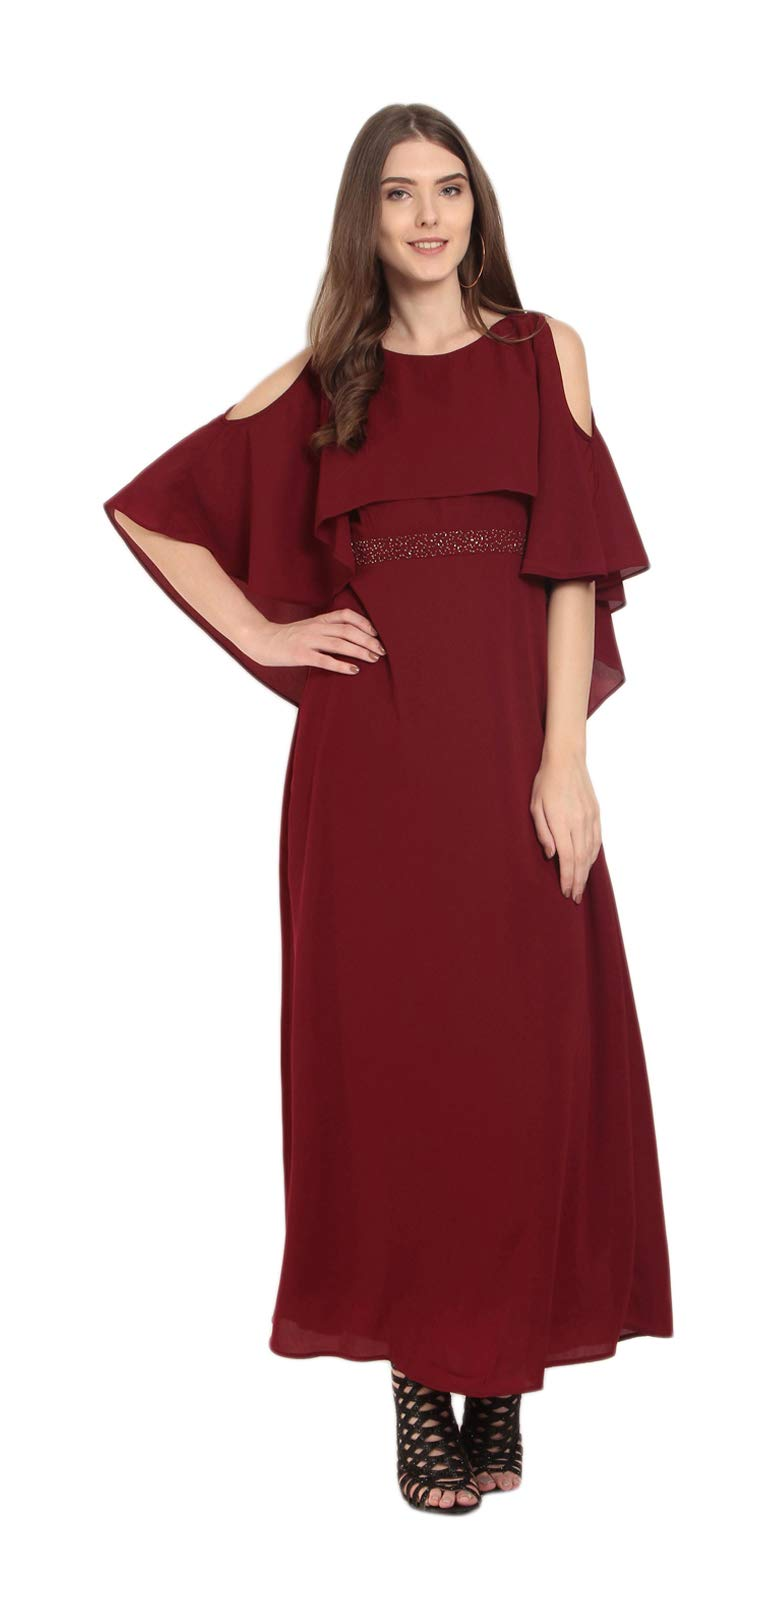 Marie Claire Women's Dress Maroon